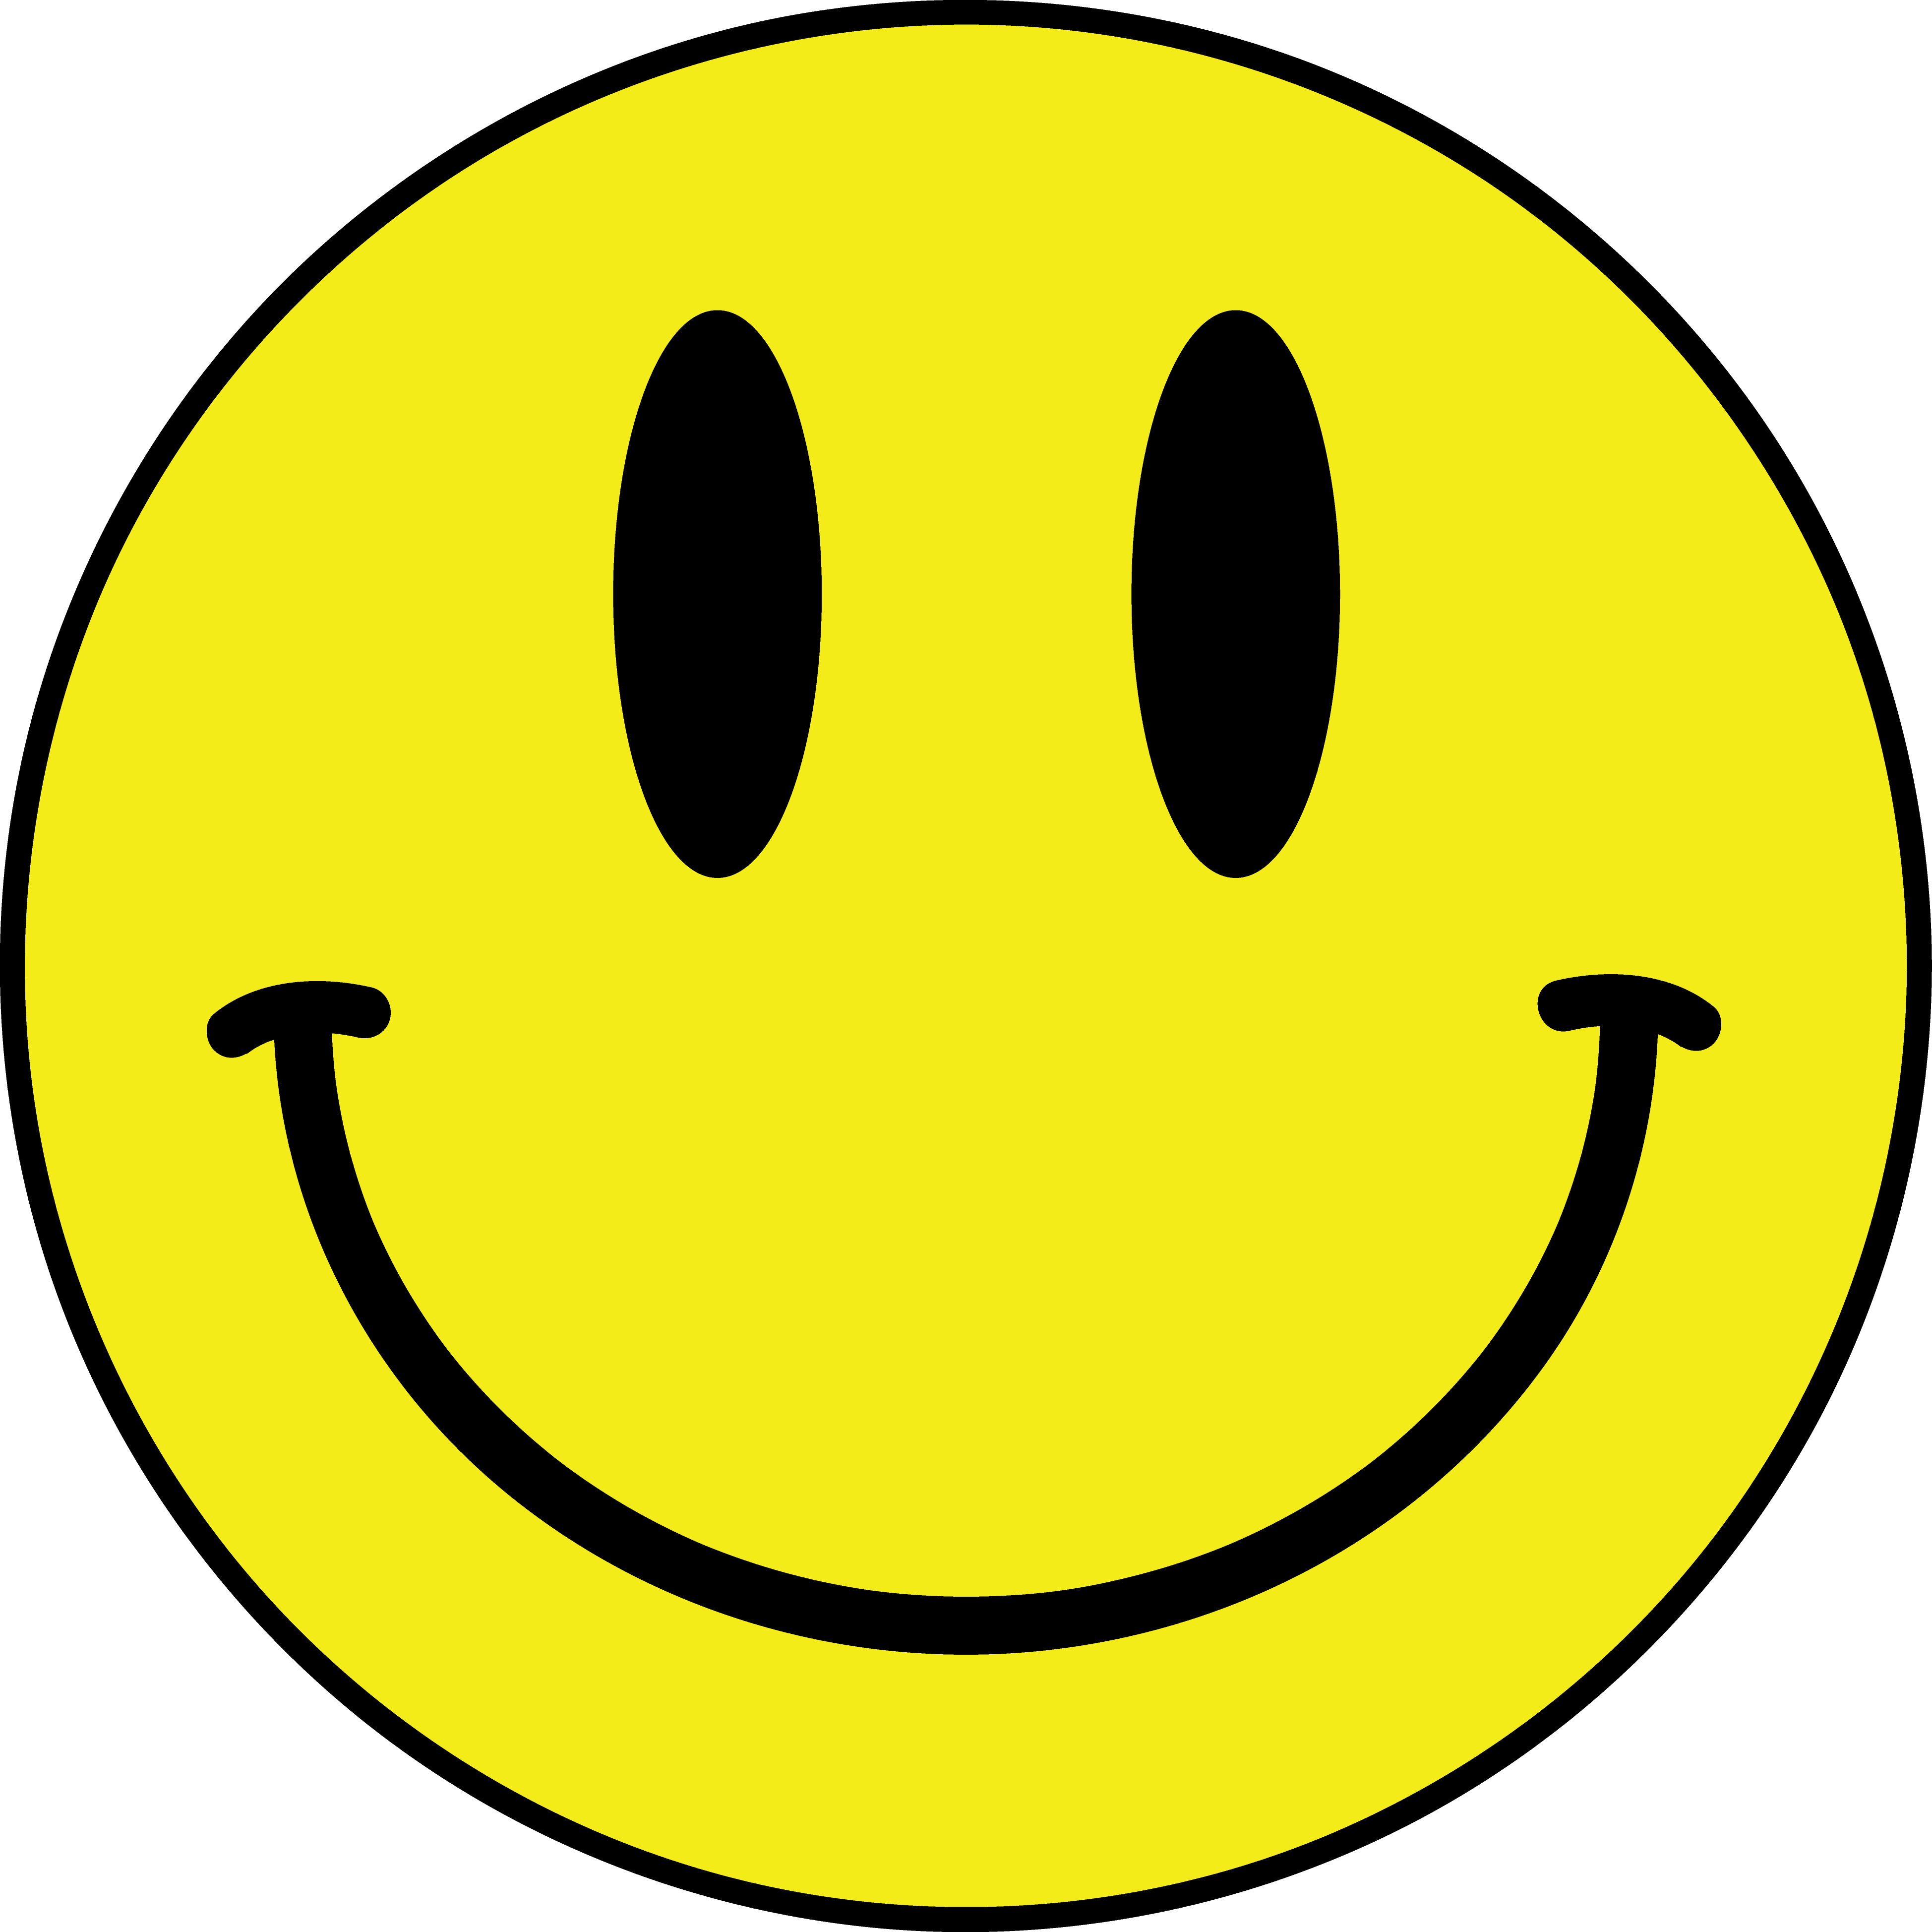 Smiley Looking Happy PNG Image Smiley, Smiley face